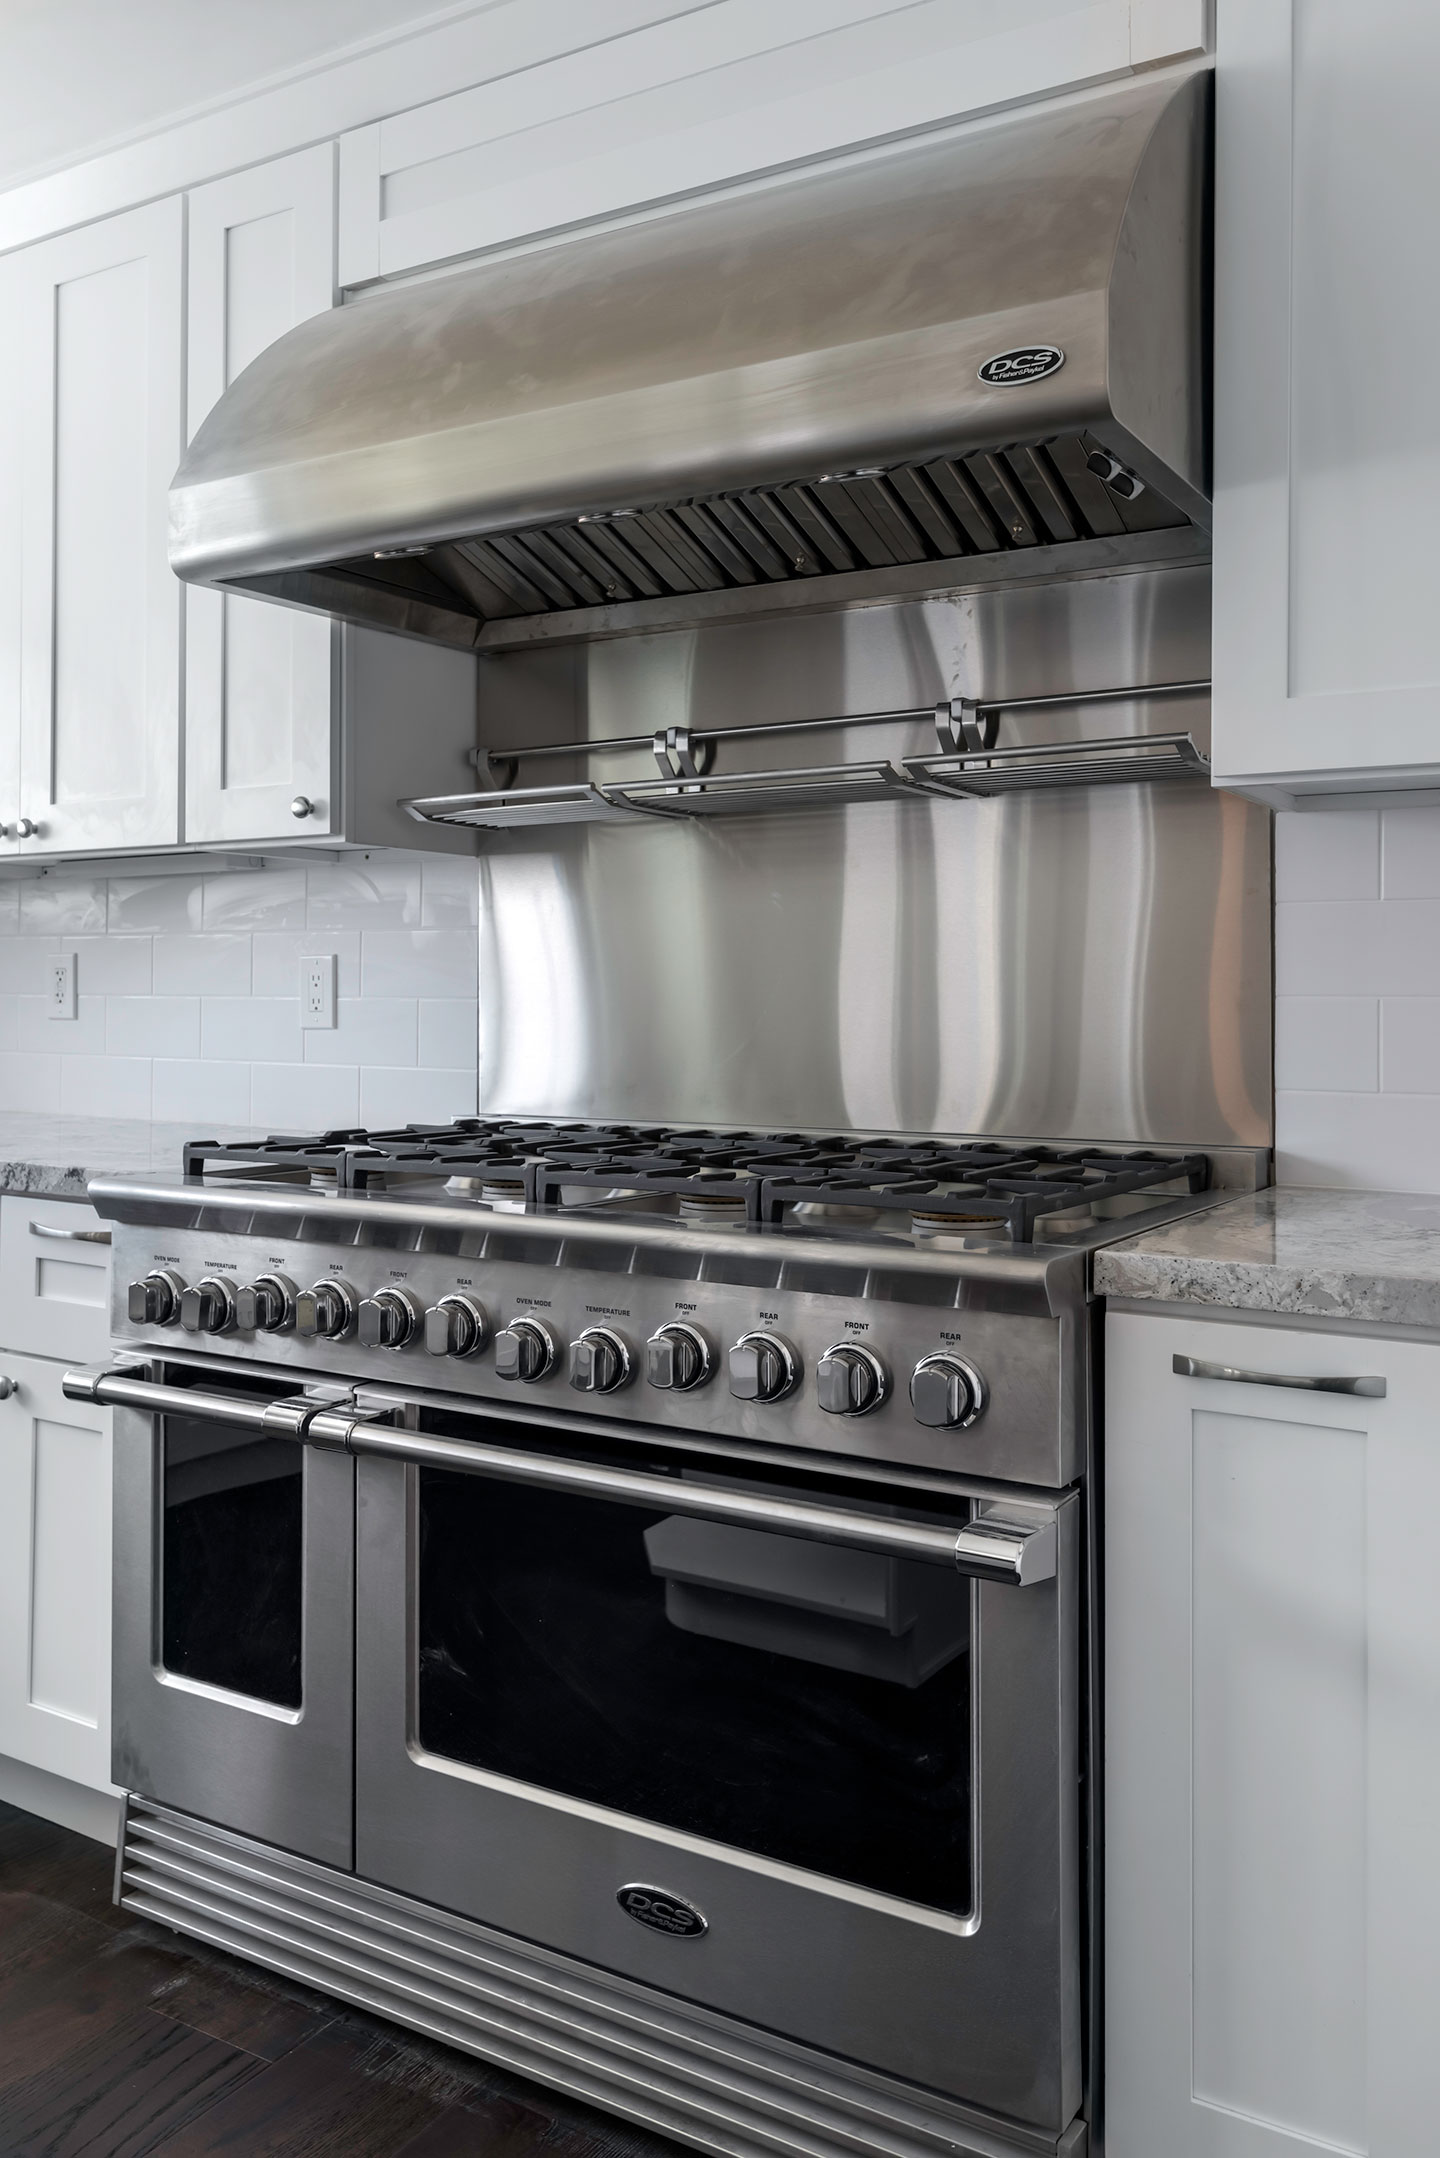 6 stage stone with double oven